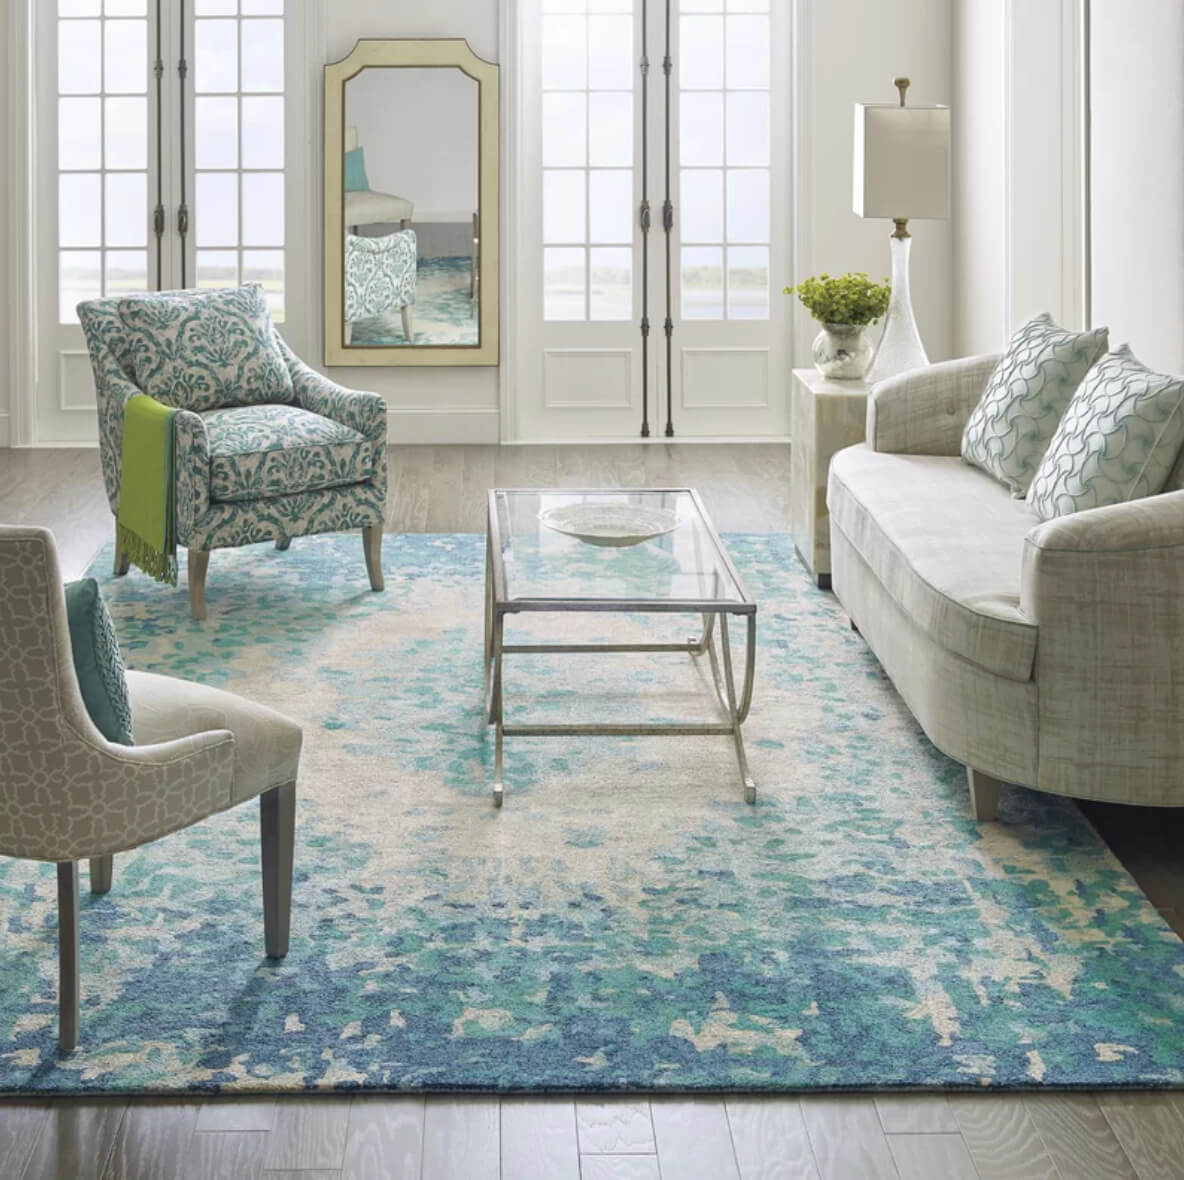 12 Living Room Rug Ideas That Will